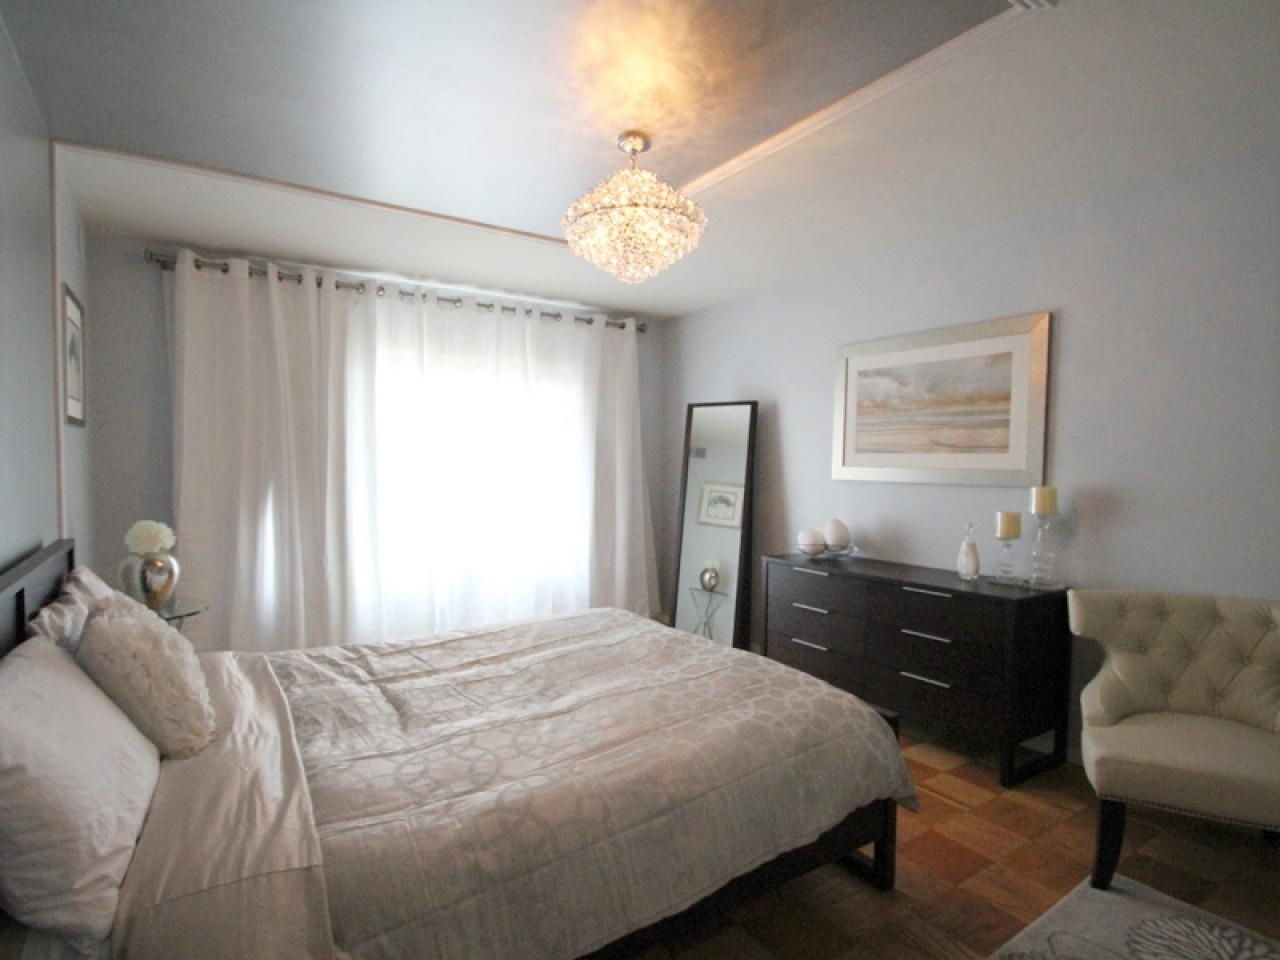 Widely Used Bedroom Chandeliers Regarding Bedroom Chandelier Lighting (View 13 of 20)